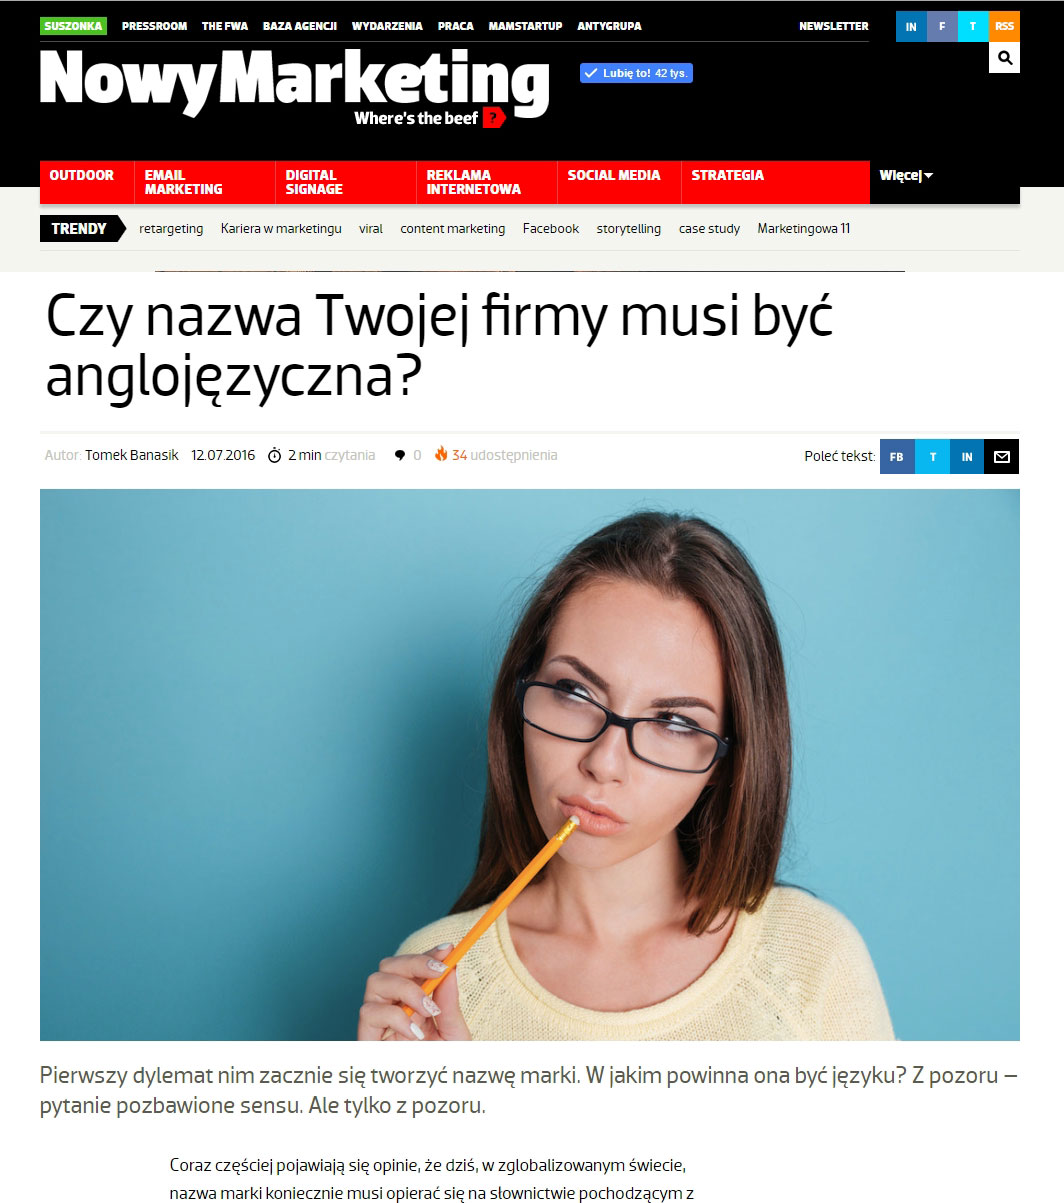 nowy marketing (2)